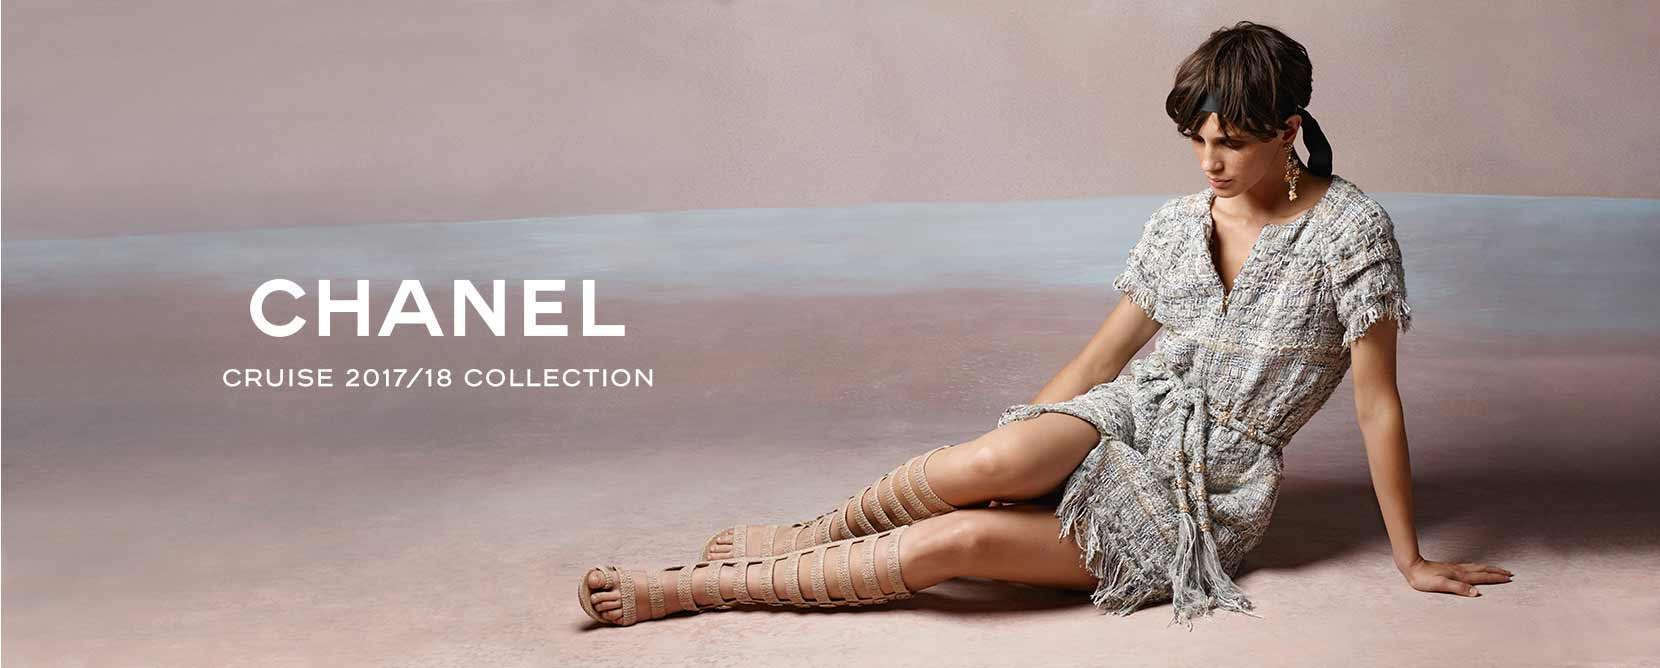 Chanel Cruise 2017/18 collection